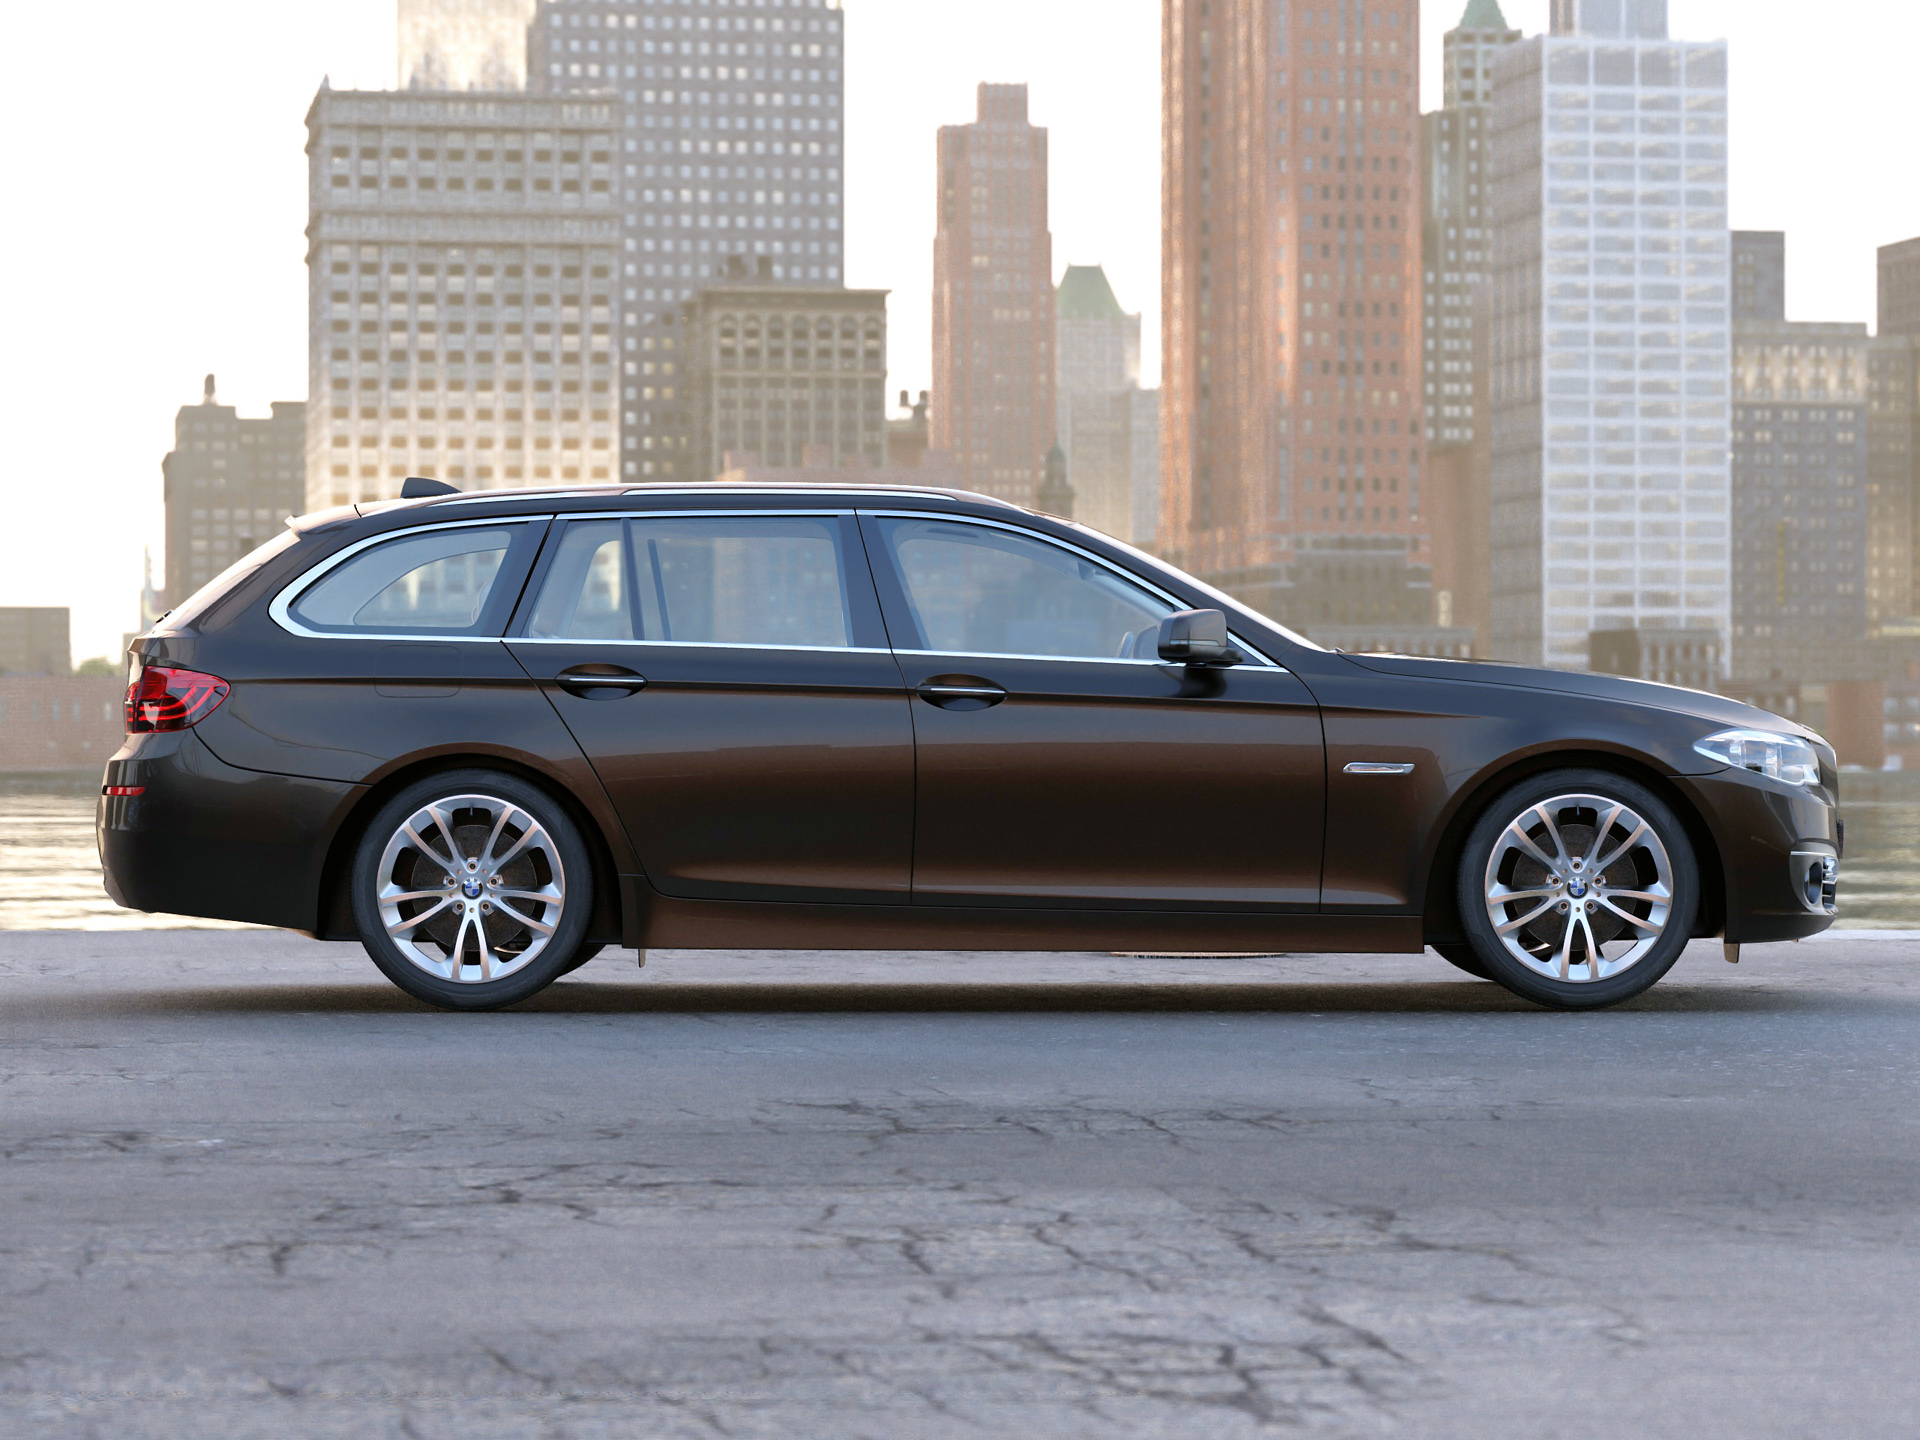 bmw 5 series touring 2014 3d model buy bmw 5 series. Black Bedroom Furniture Sets. Home Design Ideas